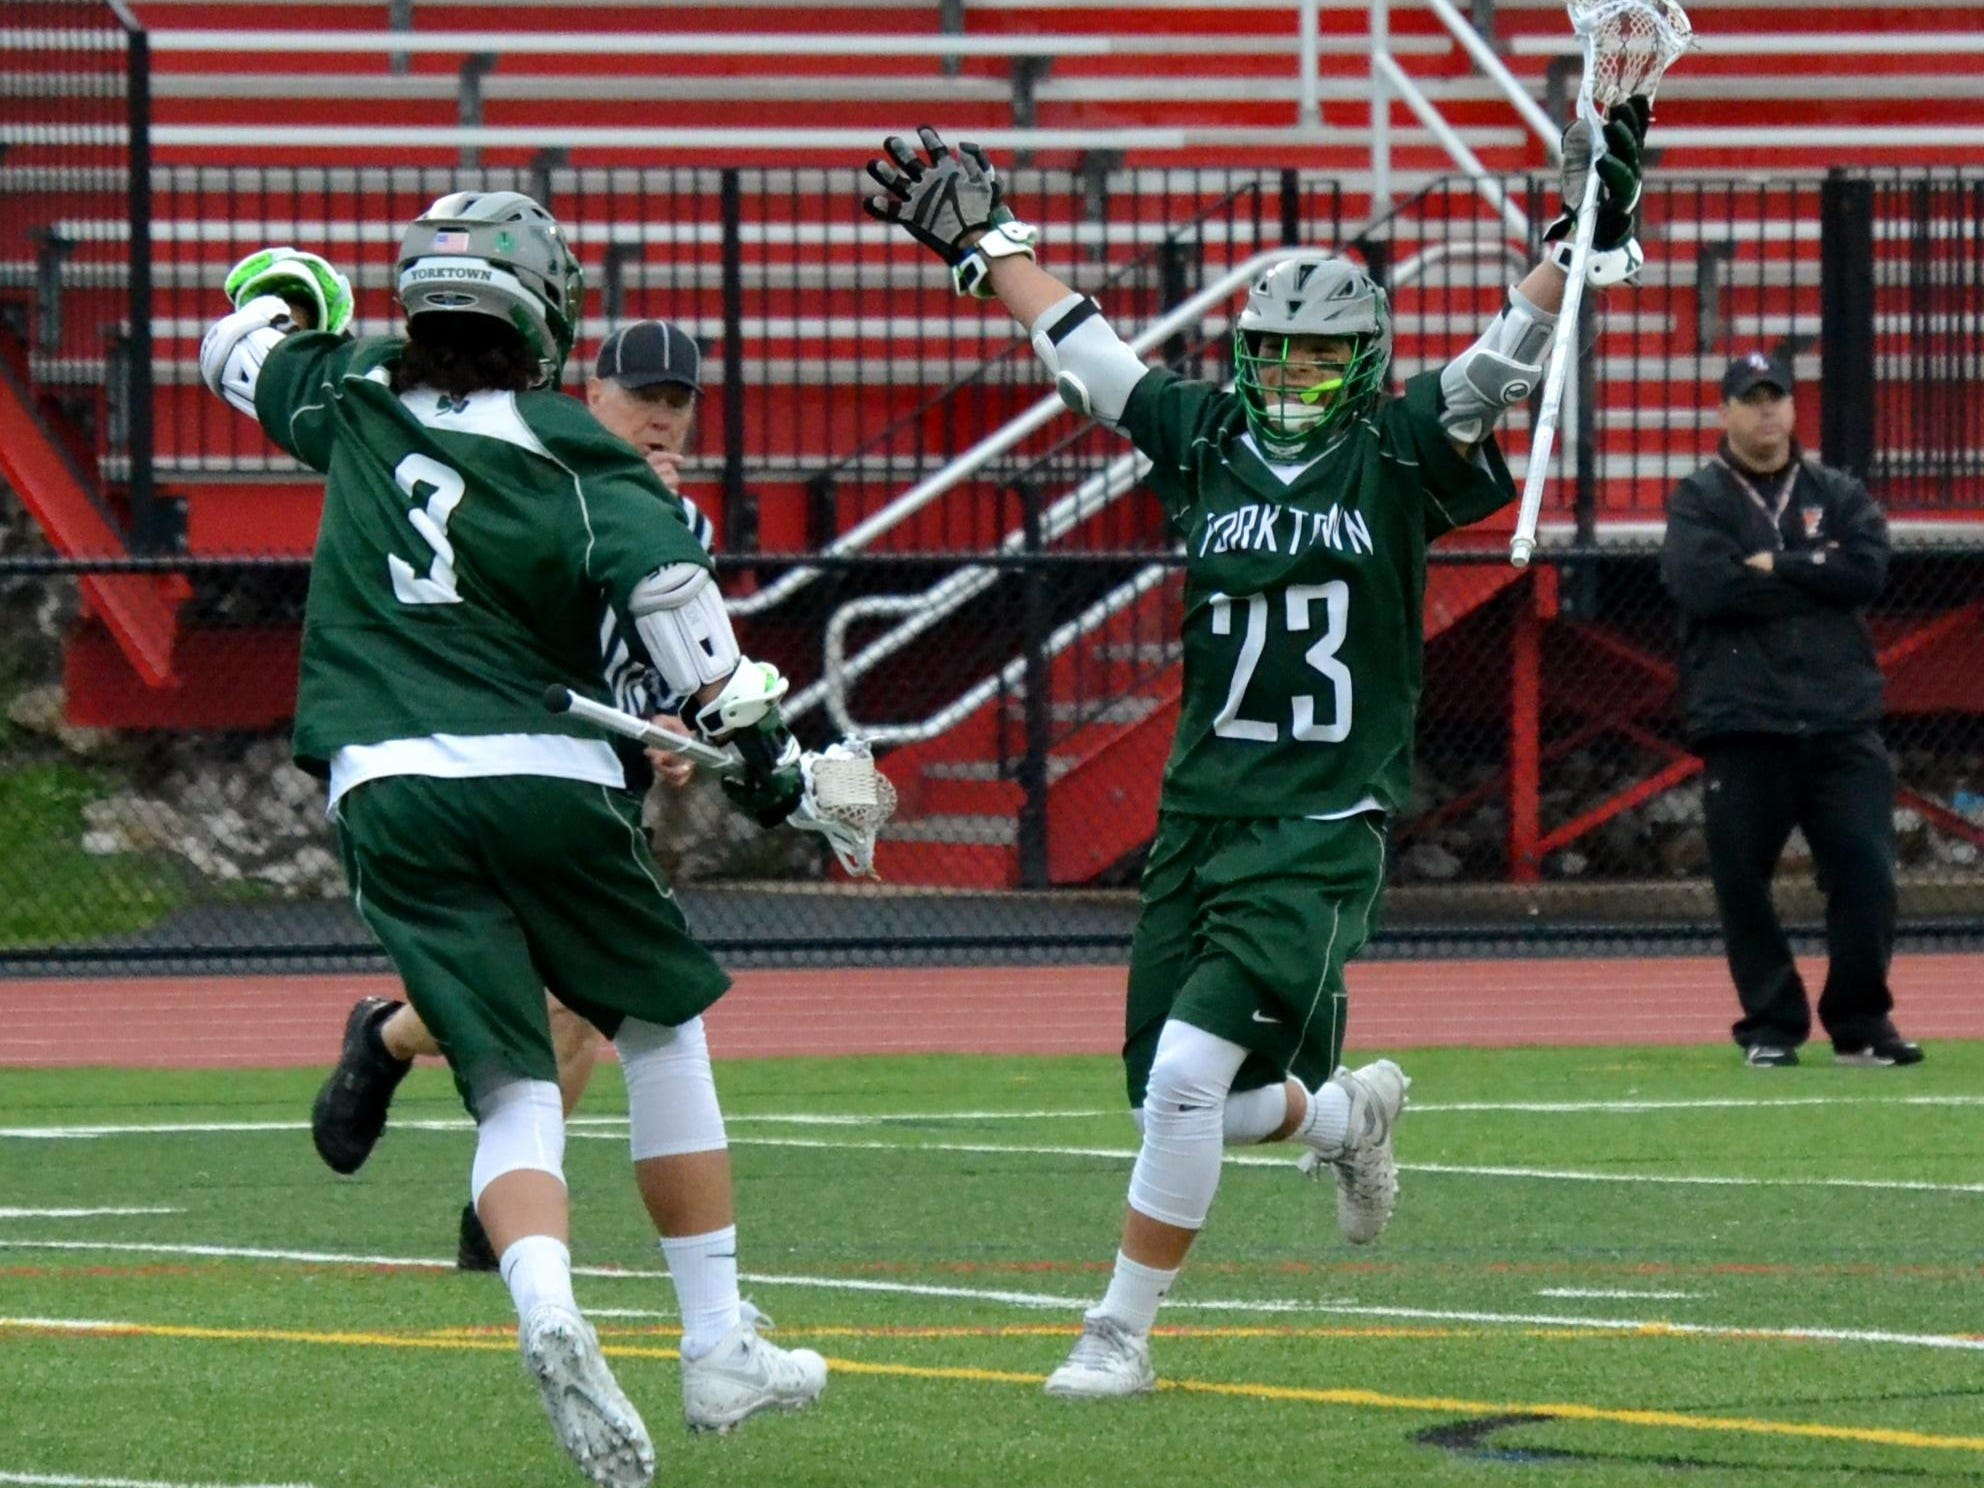 Hunter Embury (23) celebrates a third-period goal with his brother, Jamison. They each scored twice for Yorktown in an 8-6 win at Fox Lane on Tuesday.